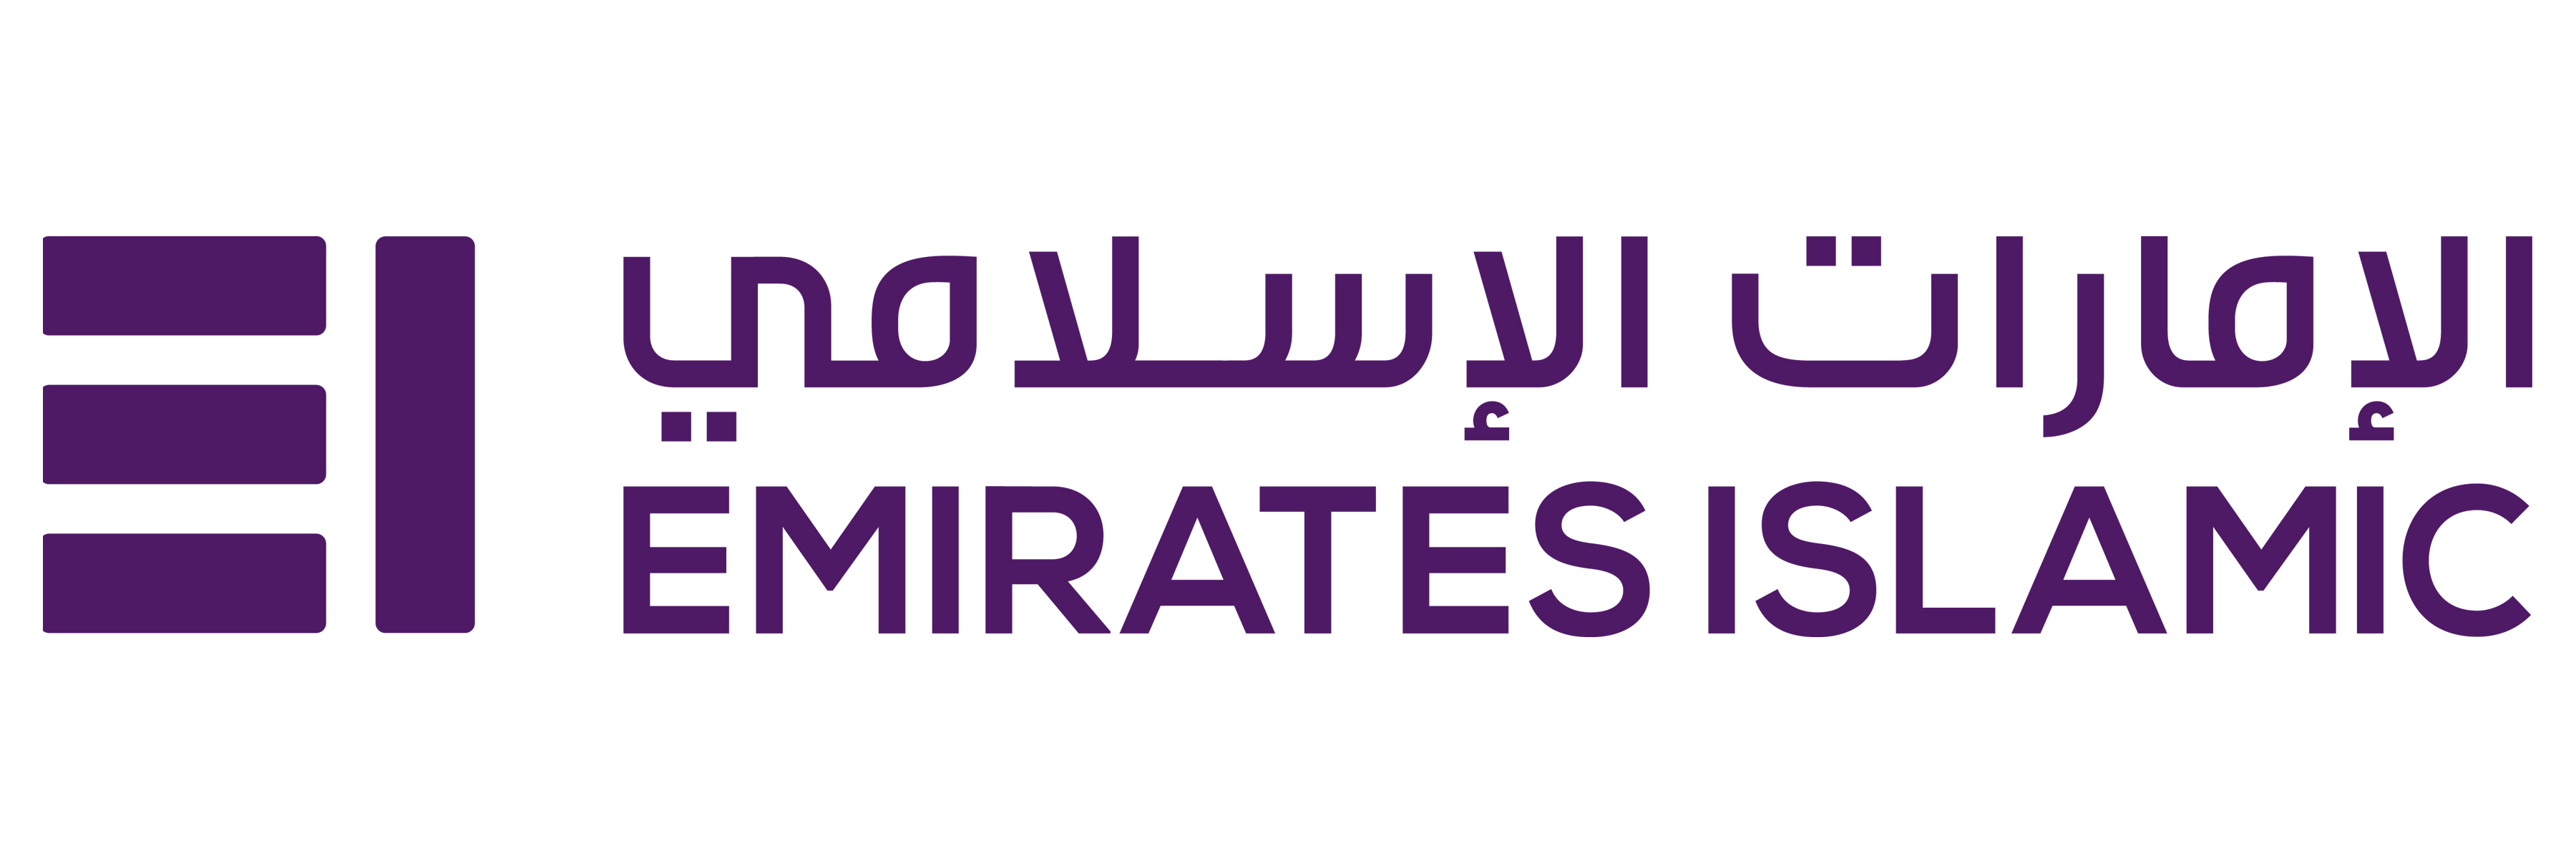 Emirates Islamic Personal Finance for Expats